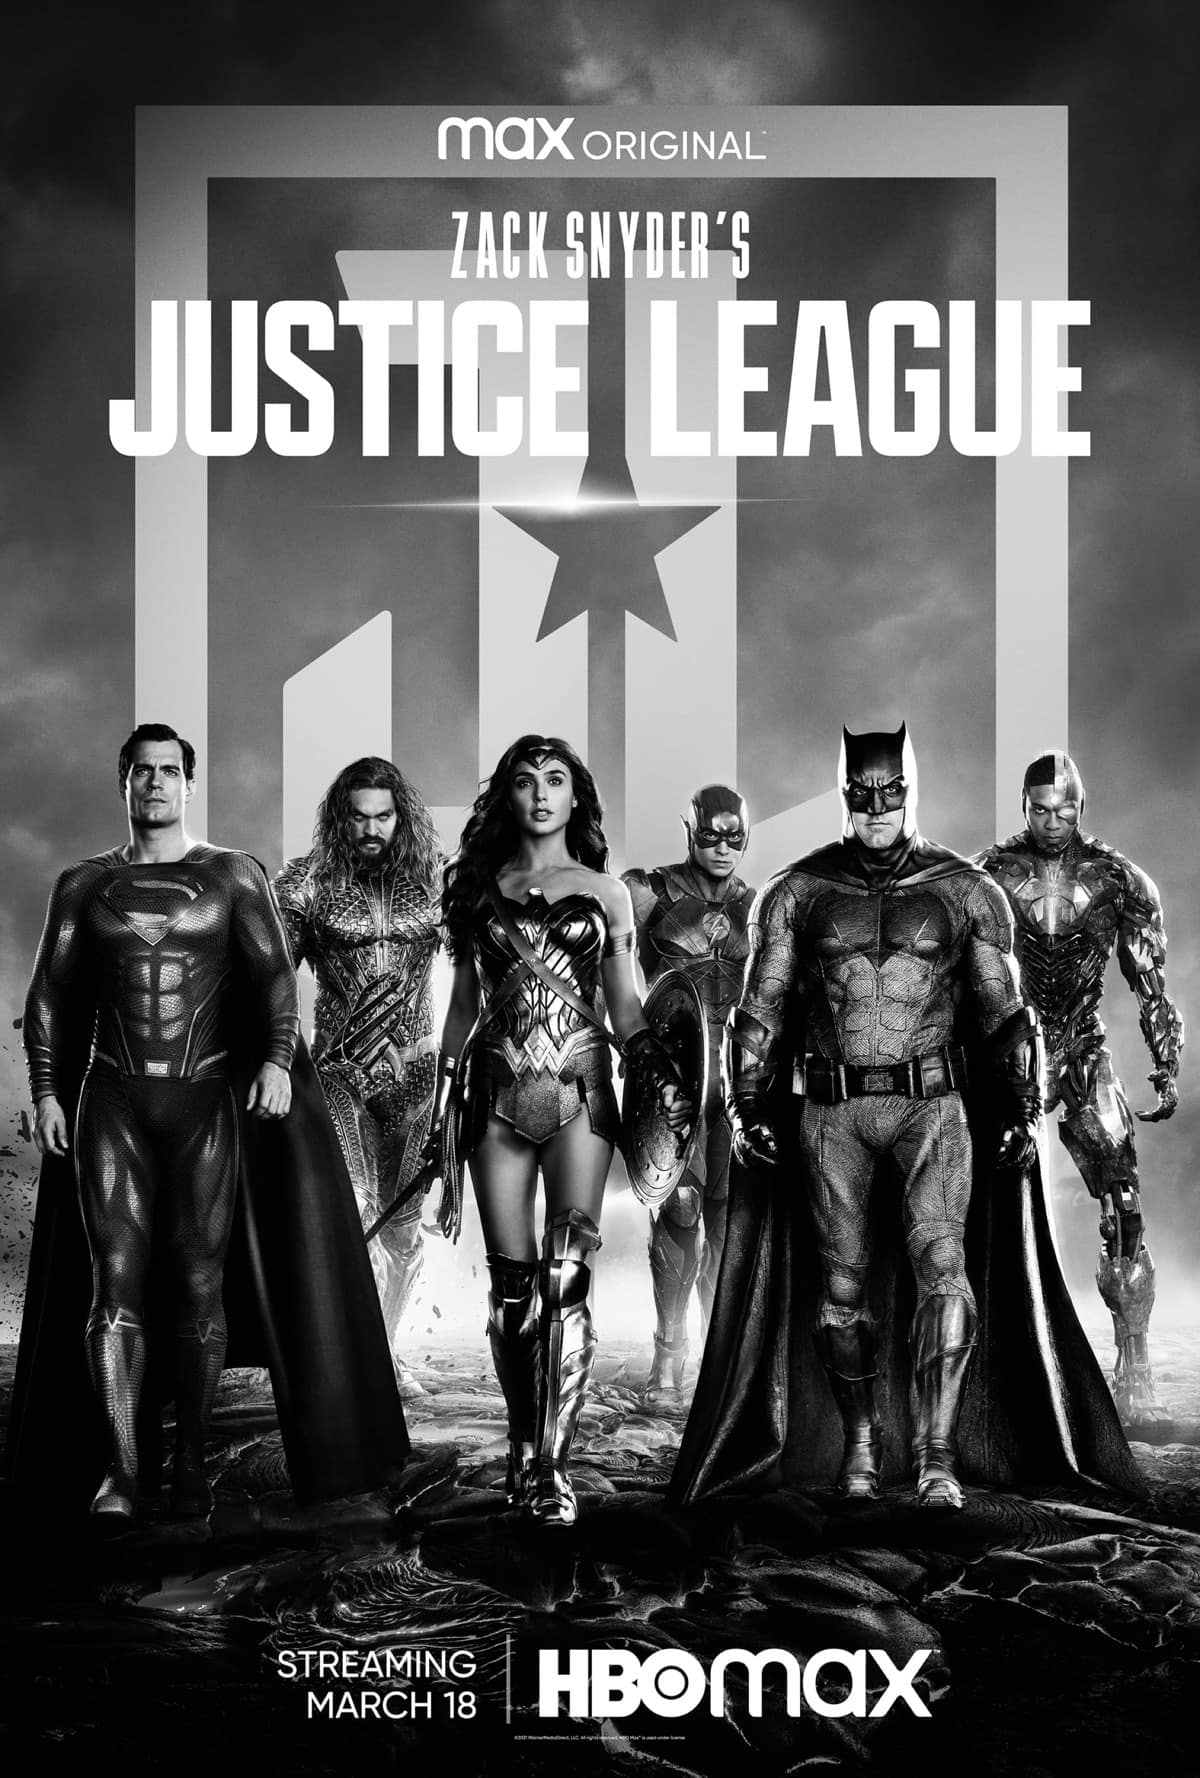 Zack Snyder Justice League Poster Key Art